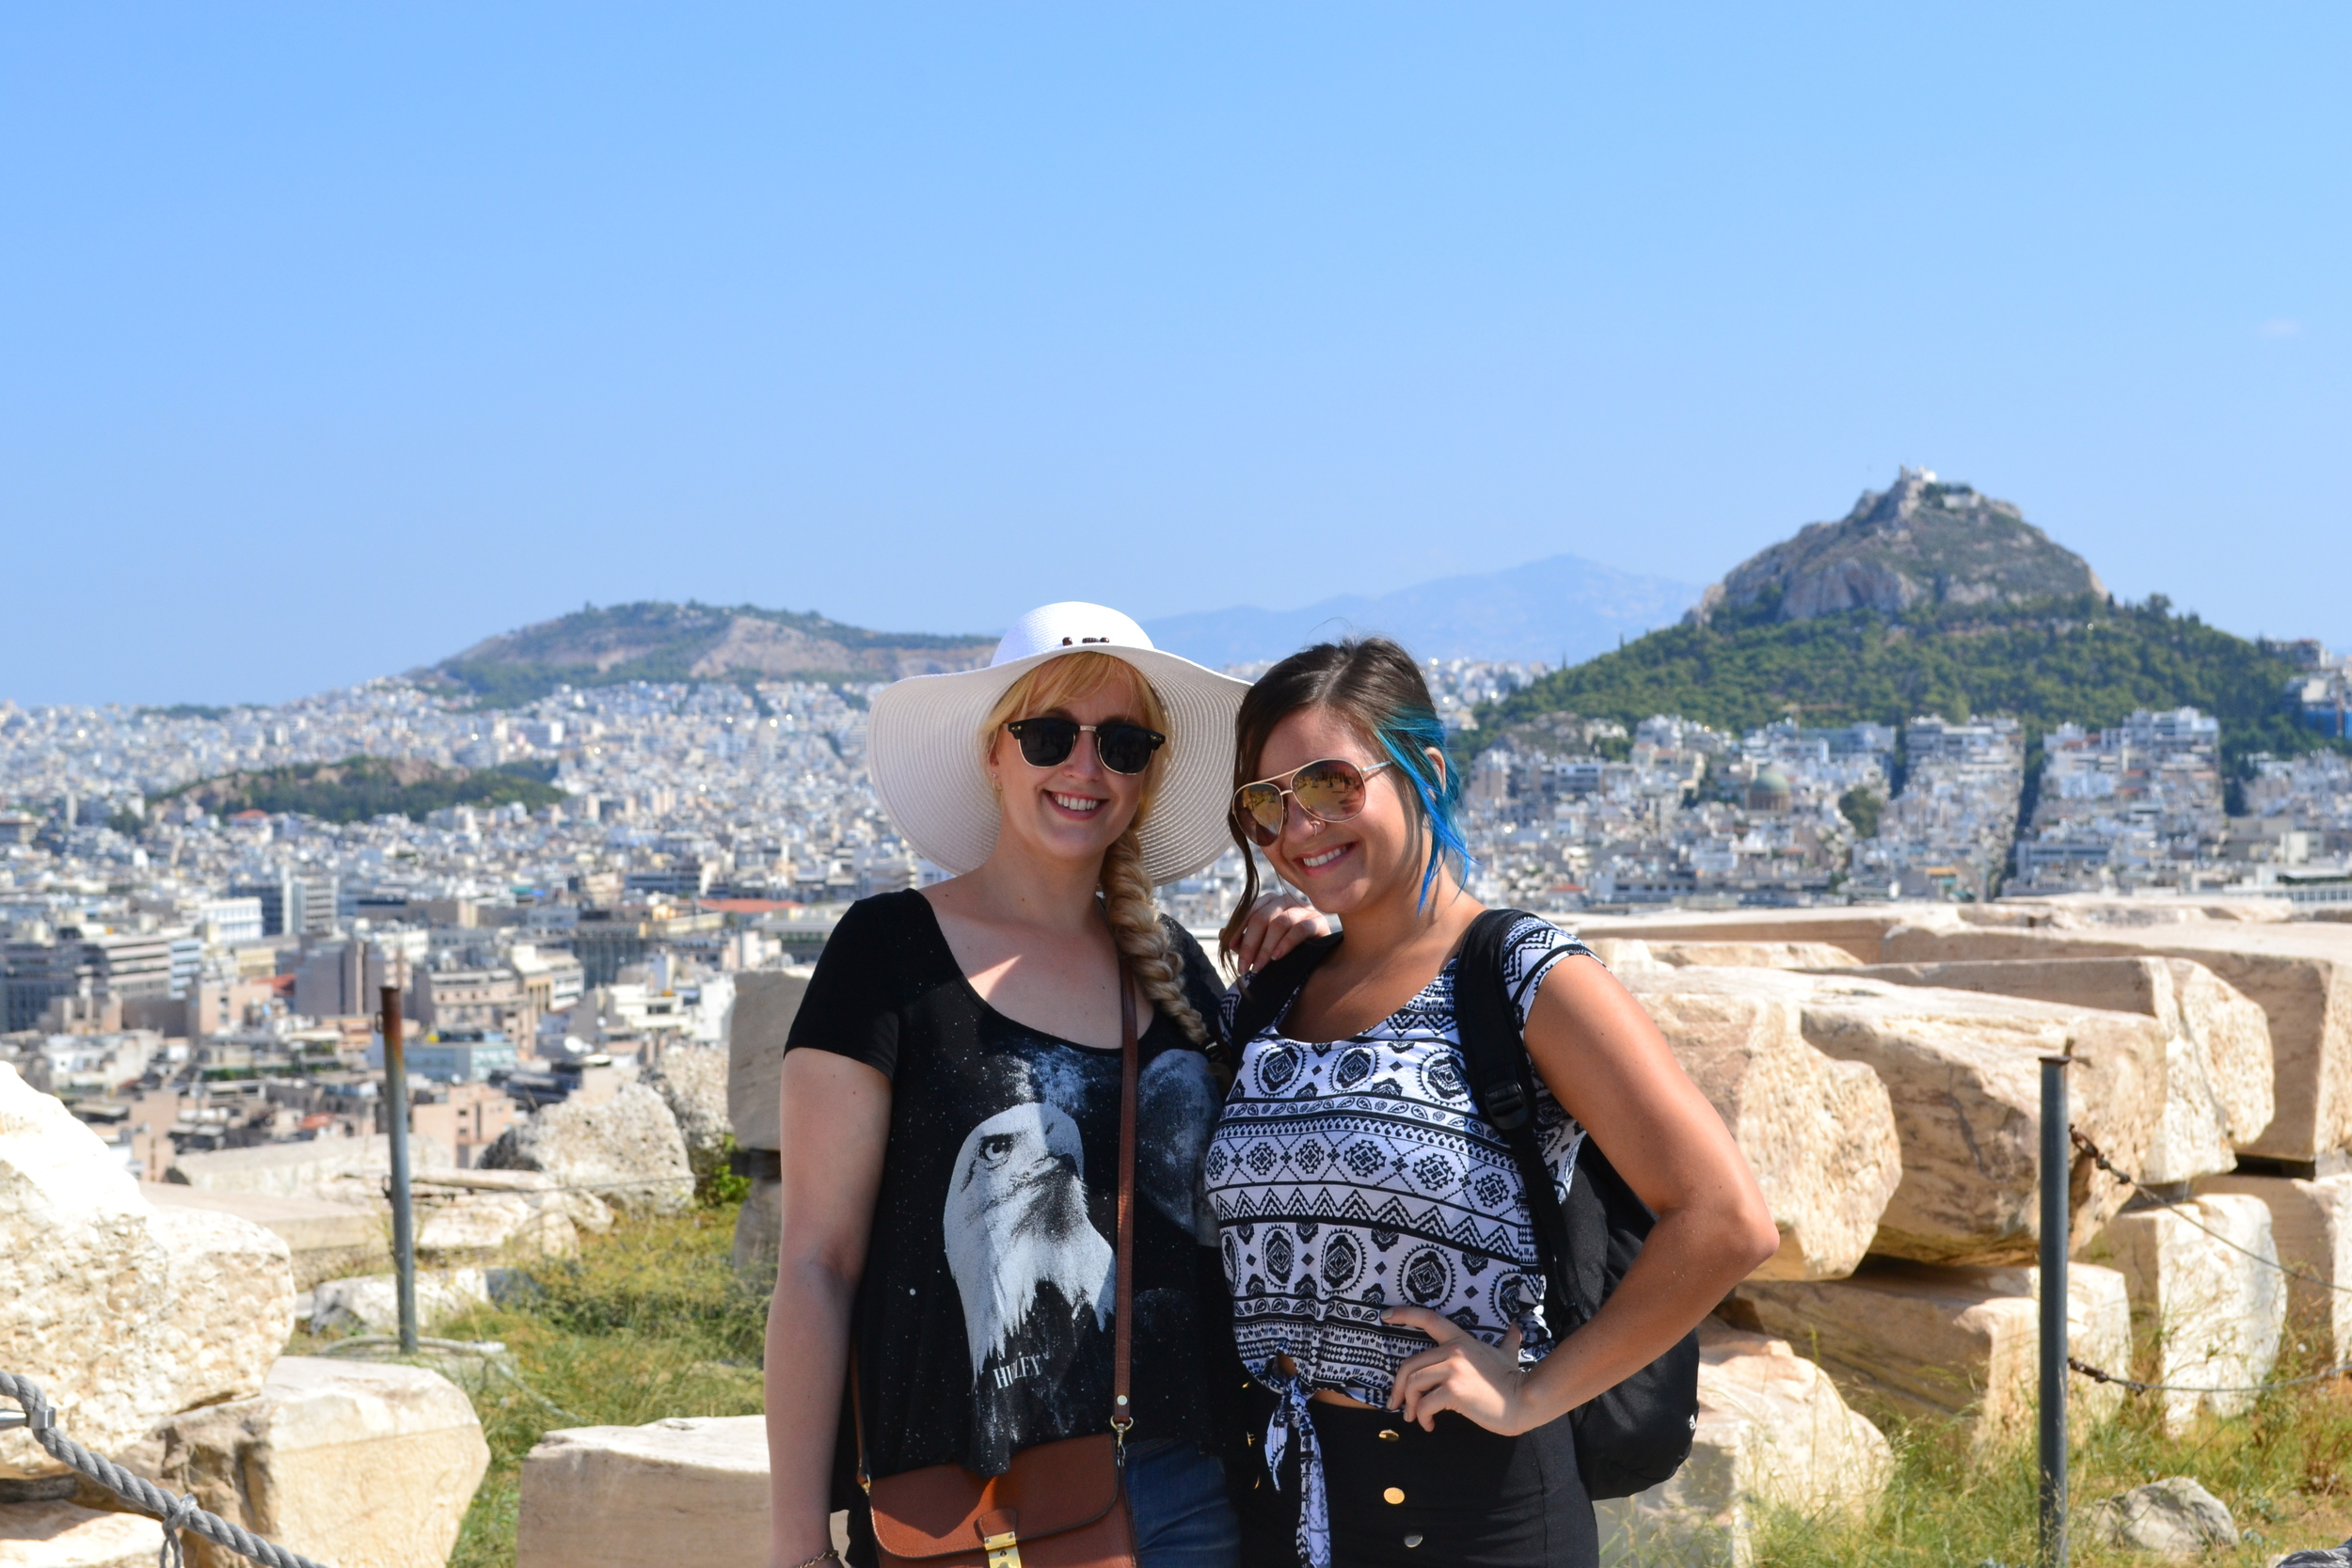 Views from the top of the Acropolis were stunning!